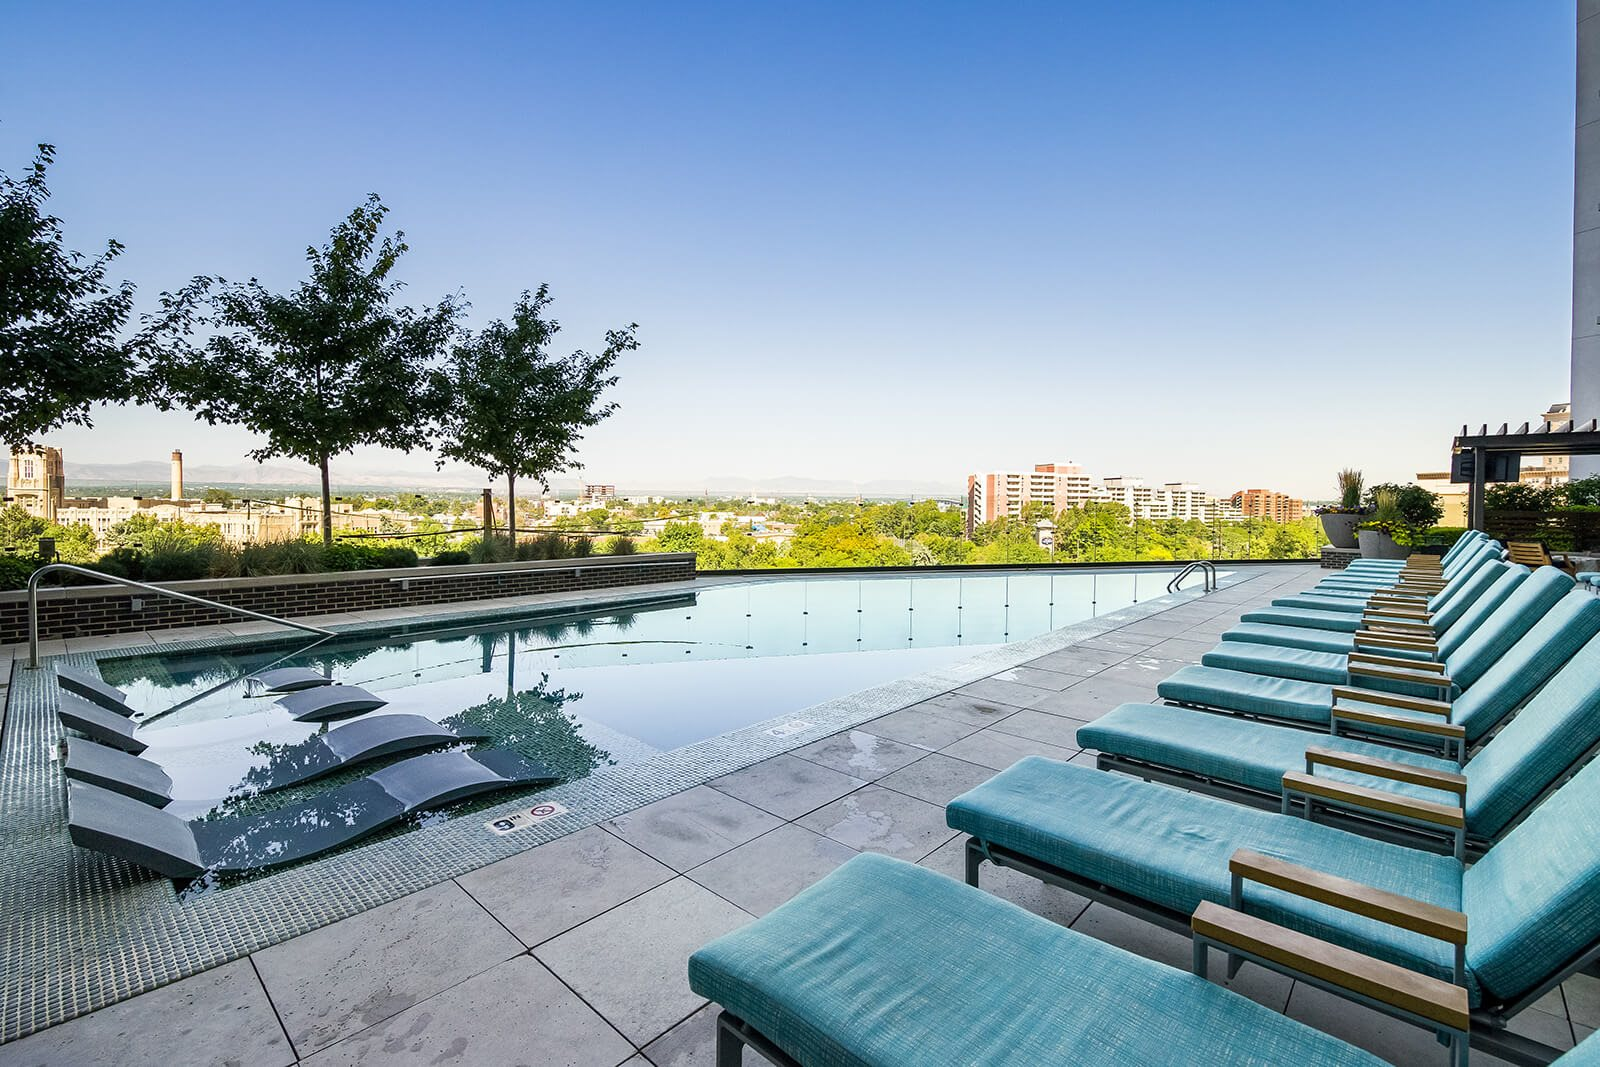 Resort-Style Pool with Sundeck and Lounge Chairs at 1000 Speer by Windsor, Denver, CO